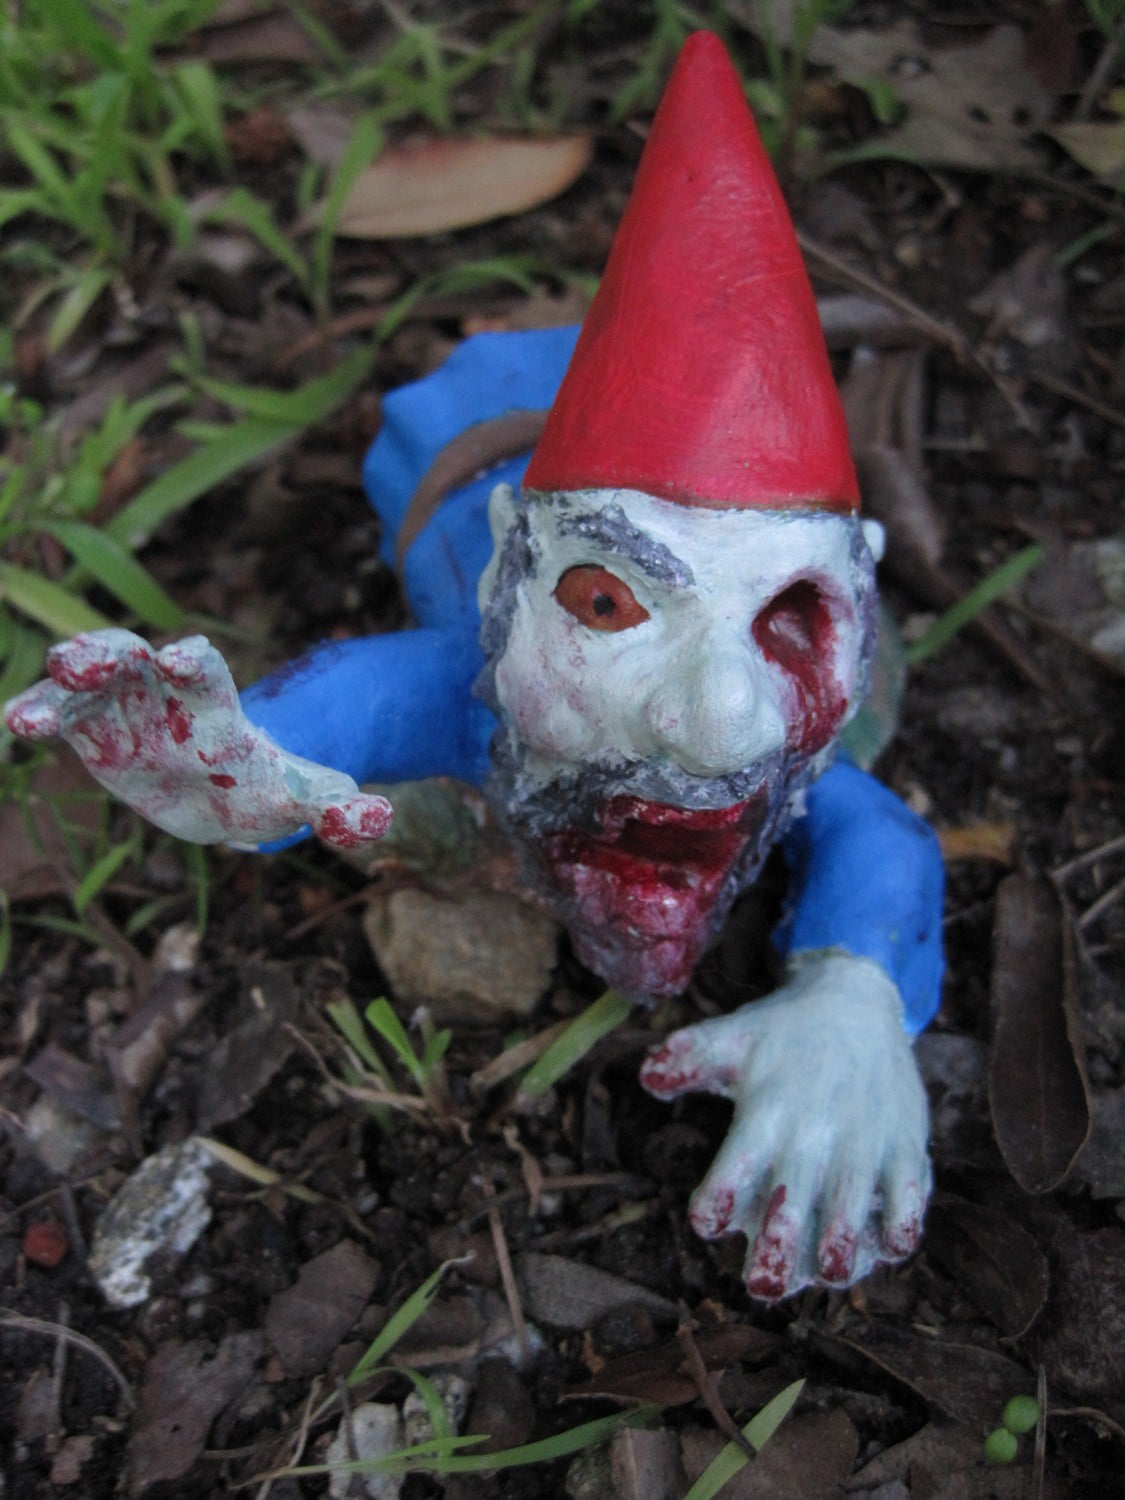 Gnome Garden: Infect Your Home With Flesh Eating Monster Zombie Gnomes